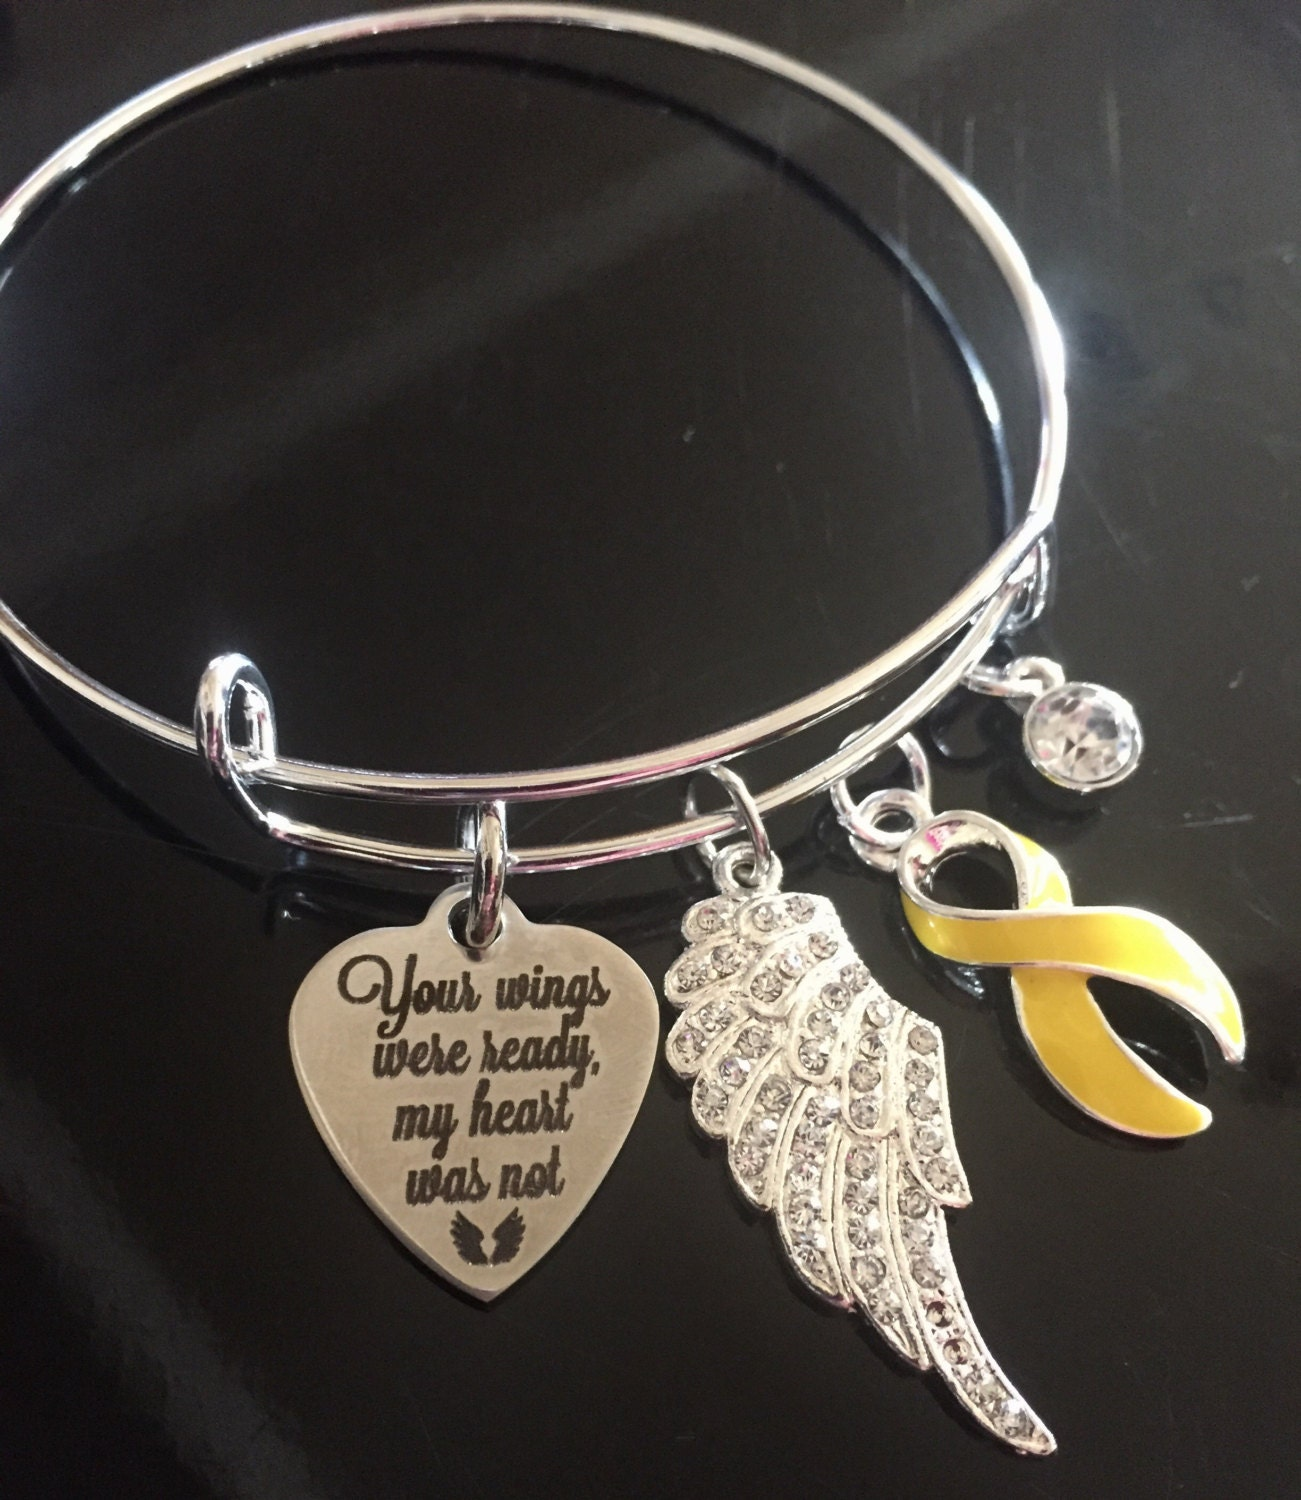 spina adenosarcoma yellow bladder survivor pin cancer ribbon charm bifida fu bracelet liver